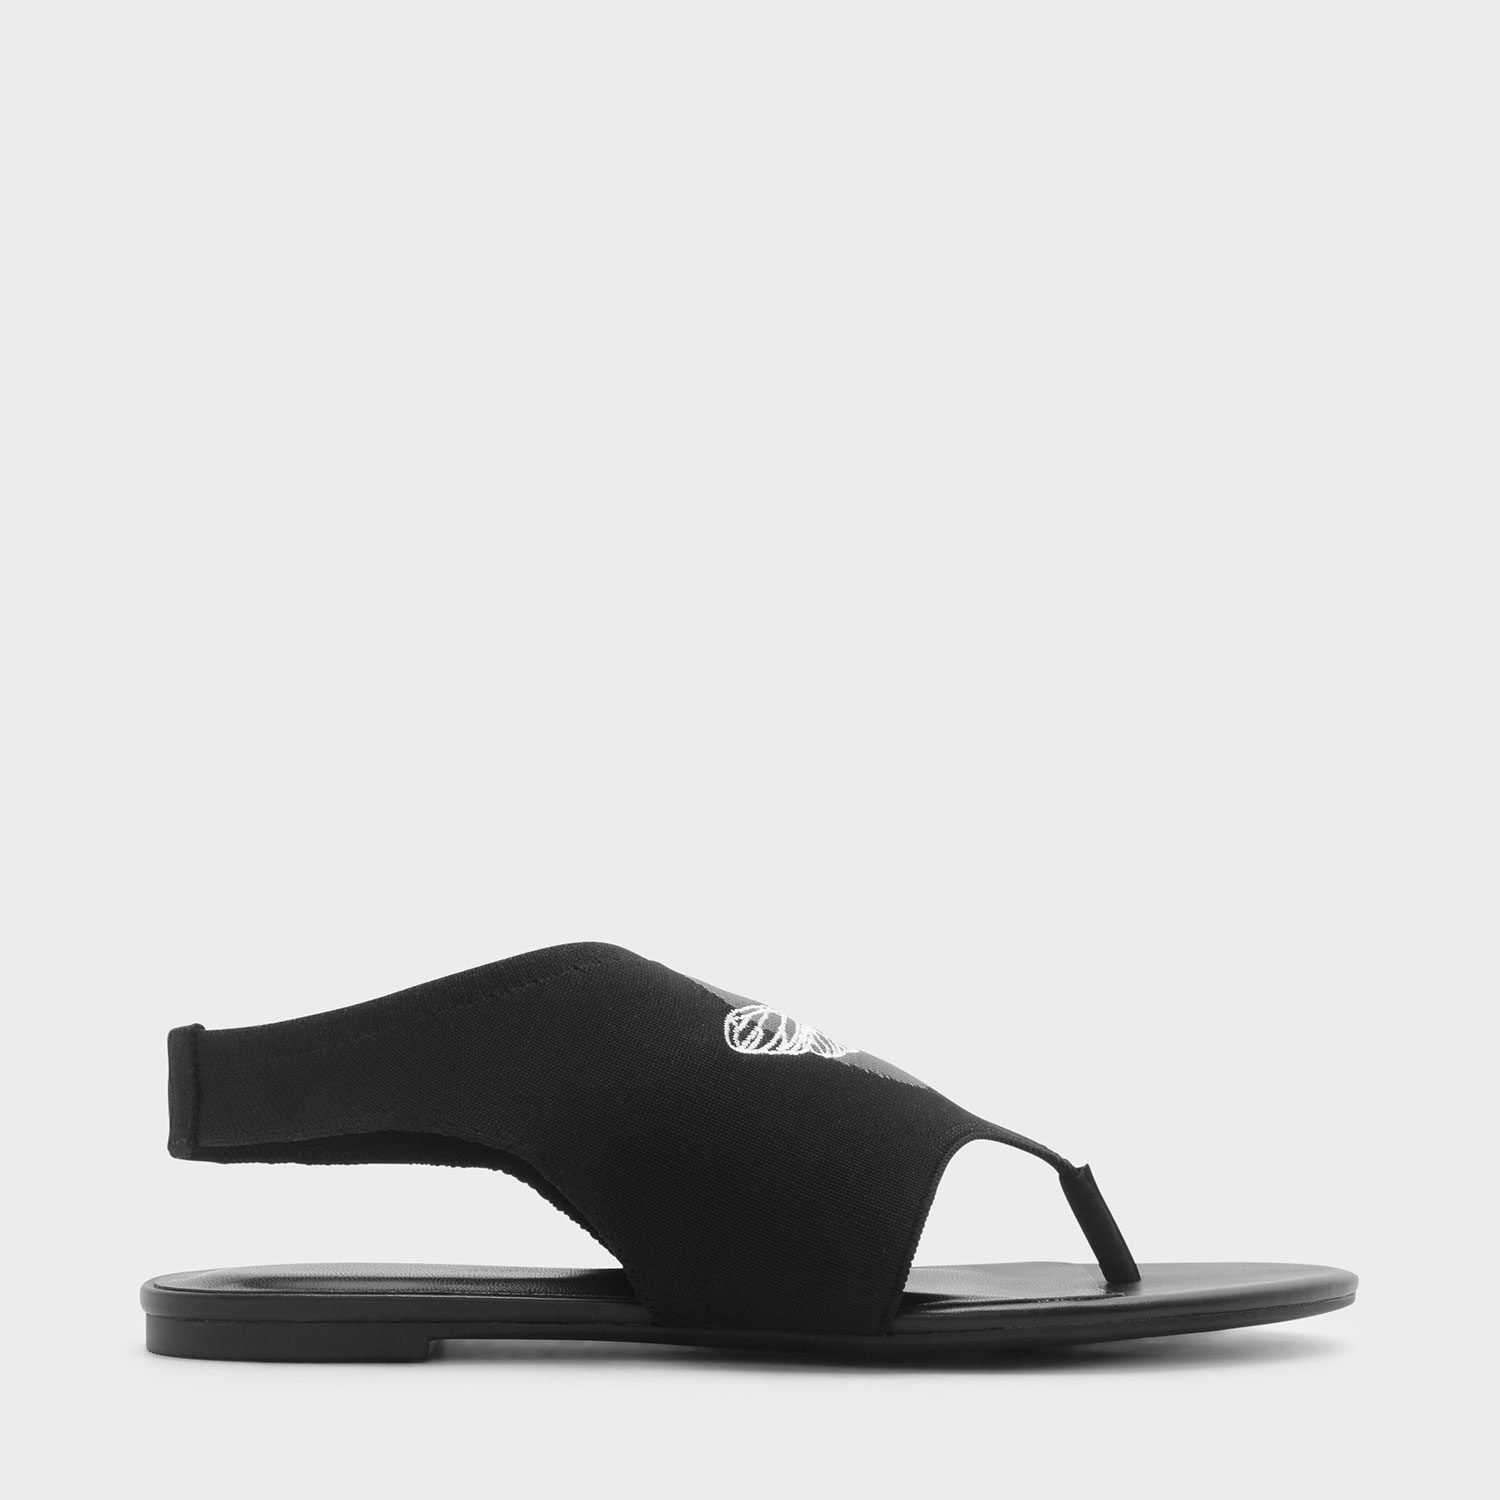 20c2e7073f65f CHARLES   KEITH – Shoes. Black thong sandals featuring an embroidered  detail and a sling back design.